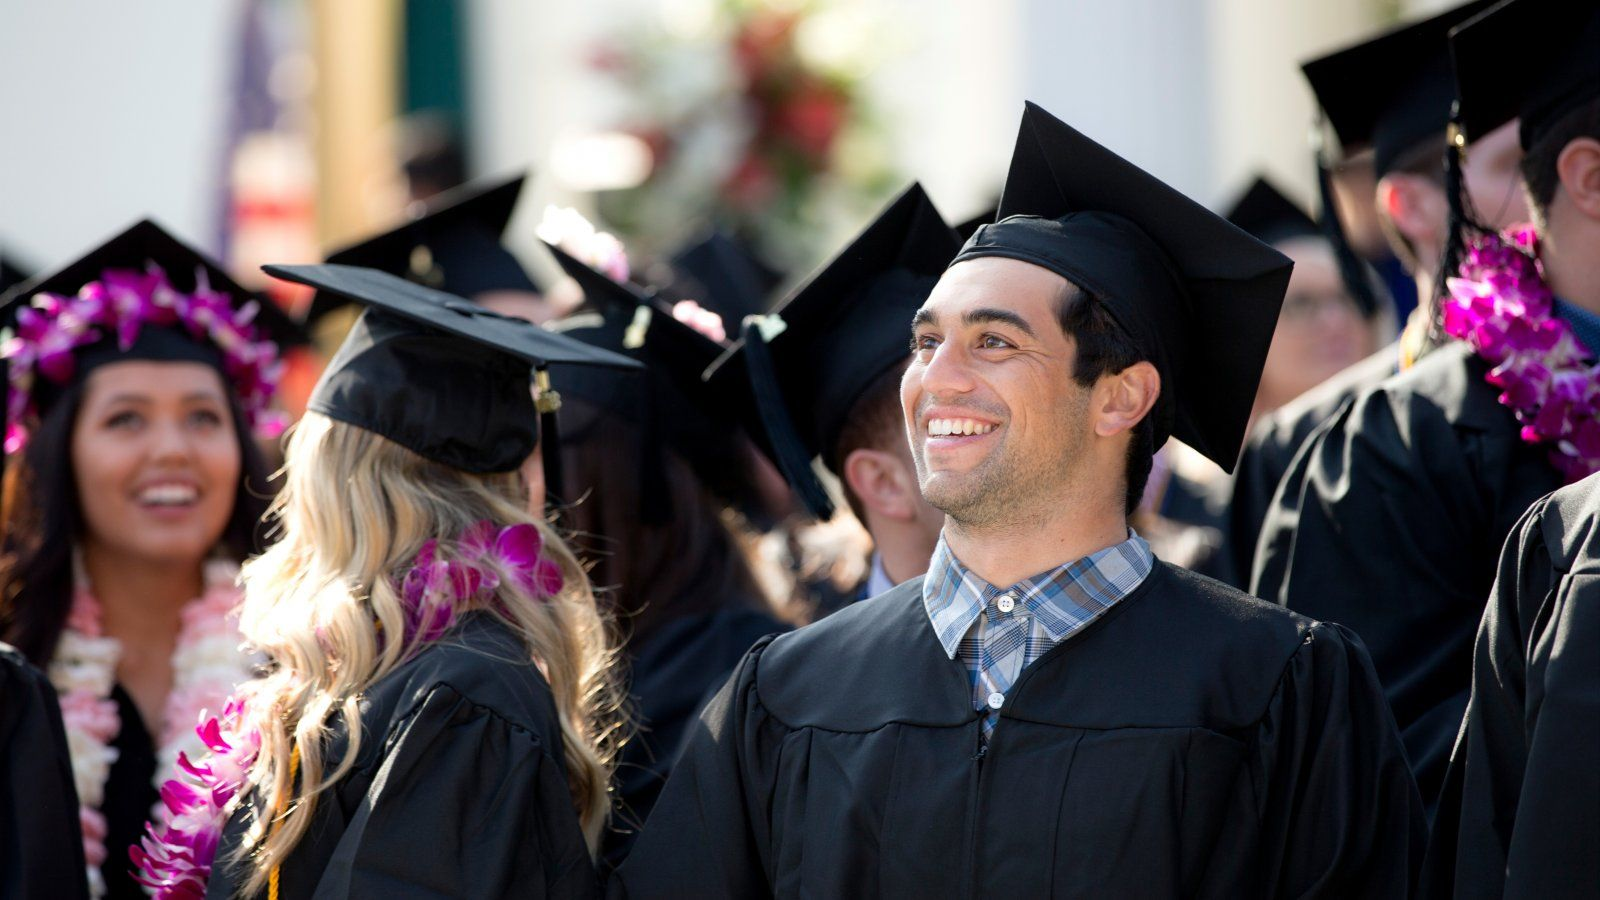 Male graduate student during commencement in crowd